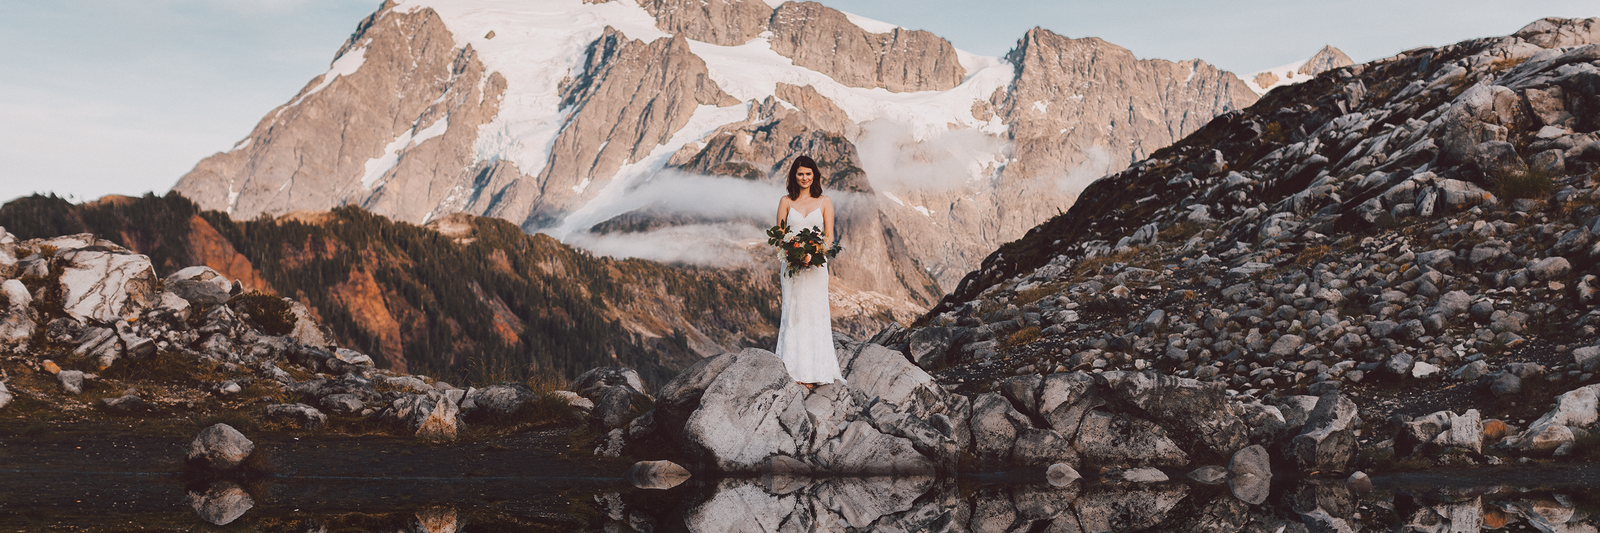 Mount Baker Aritst Point wedding bridal session by Kyle Goldie